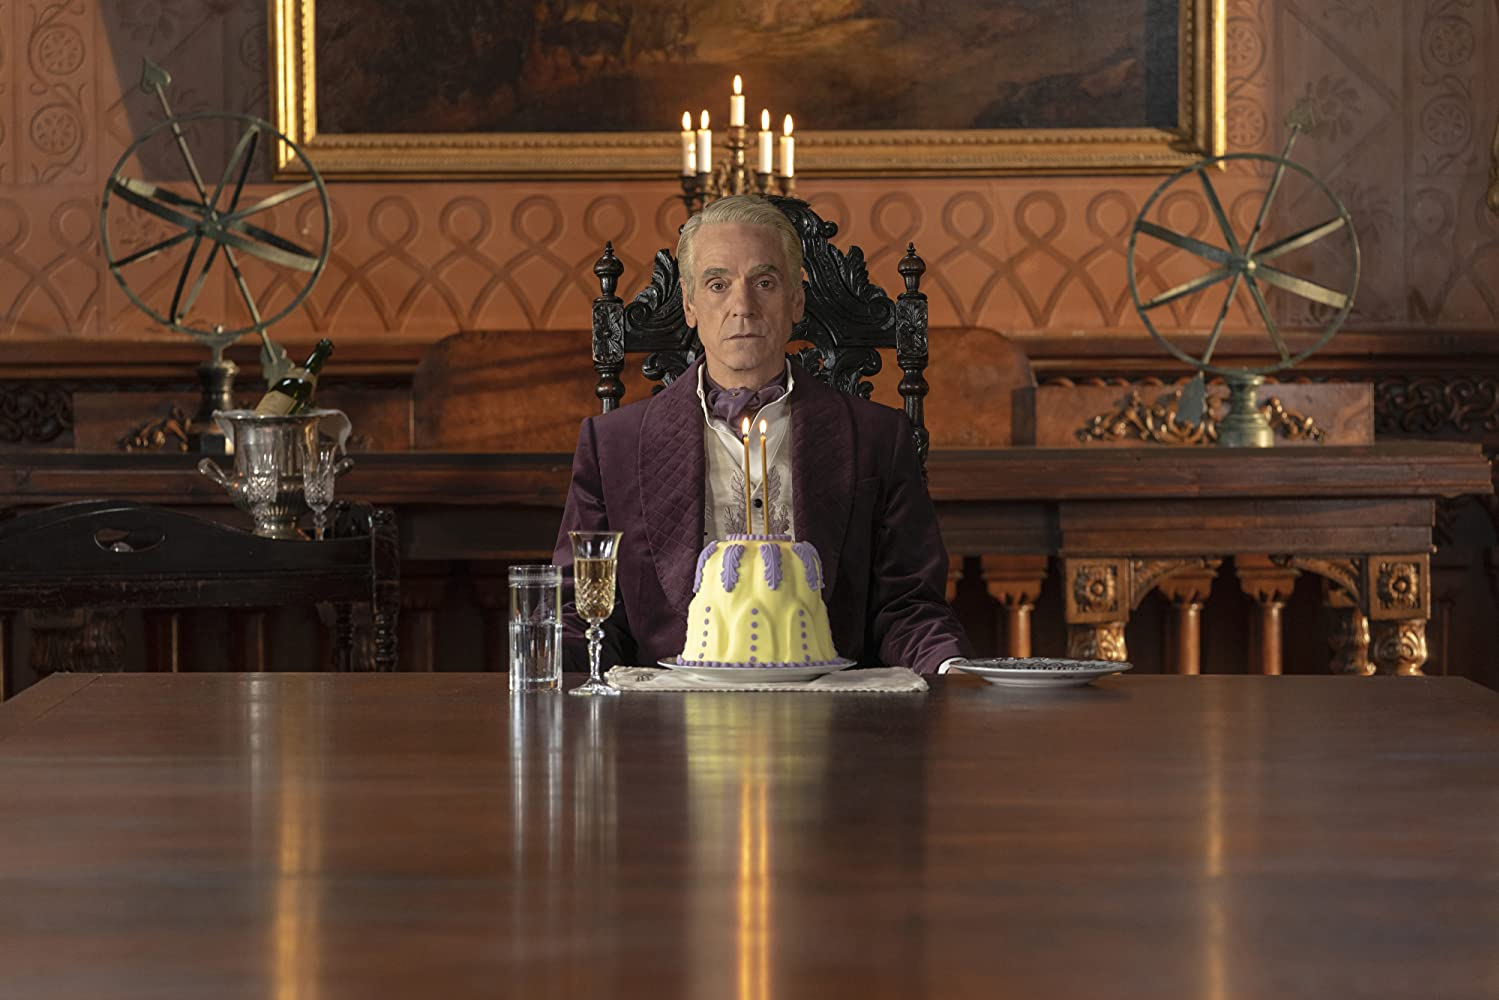 Jeremy Irons in Watchmen (2019)